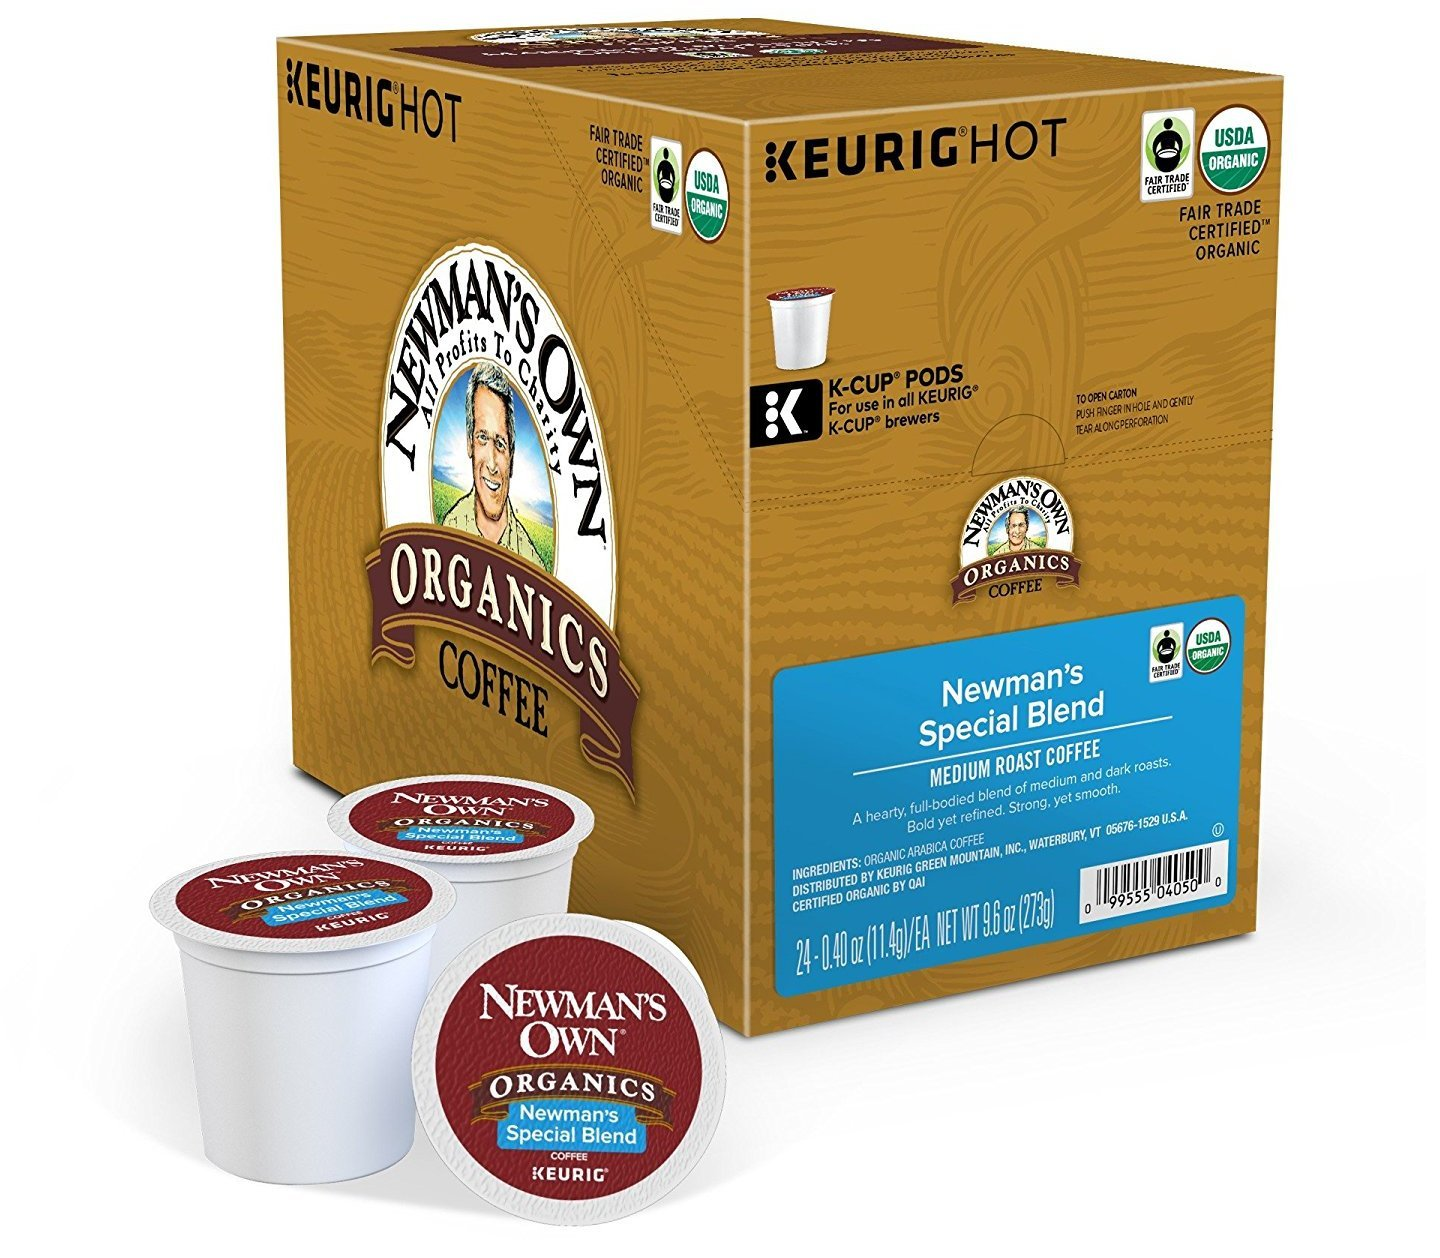 Newman's Own Organics Special Blend Extra Bold Coffee for Keurig K-Cup brewers, 24 count (2 Pack)